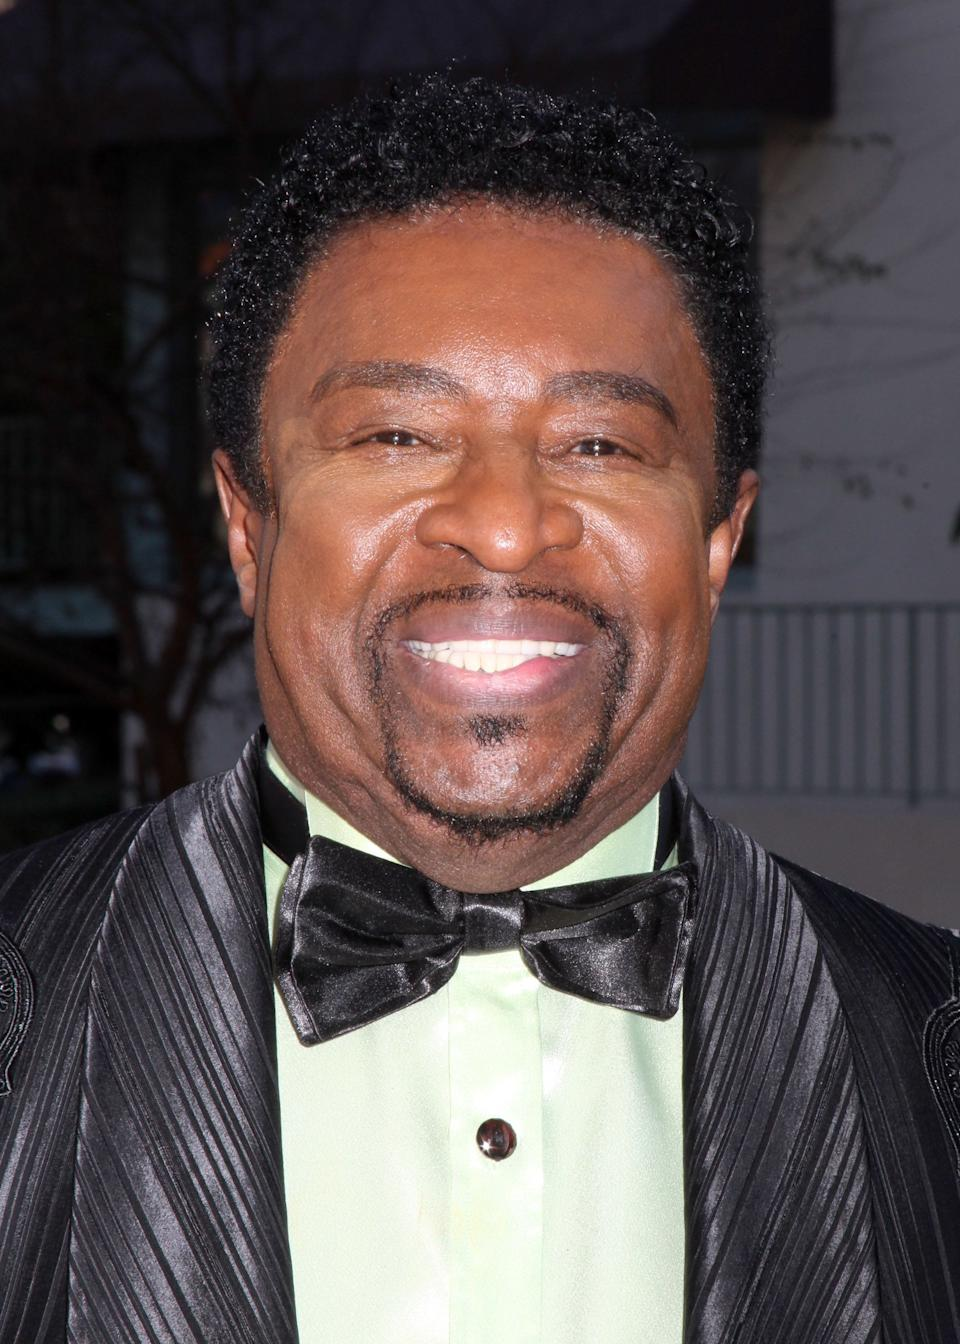 """<strong>Dennis Edwards</strong><br /><strong>Singer with The Temptations (b. 1943)<br /><br /></strong>The family of the US star confirmed he had passed away in hospital <a href=""""http://www.huffingtonpost.co.uk/entry/dennis-edwards-dead-dies-temptations_uk_5a75753ae4b06ee97af2c2df"""">one day before his 75th birthday.</a> The cause of death was not revealed.<strong><br /></strong>"""